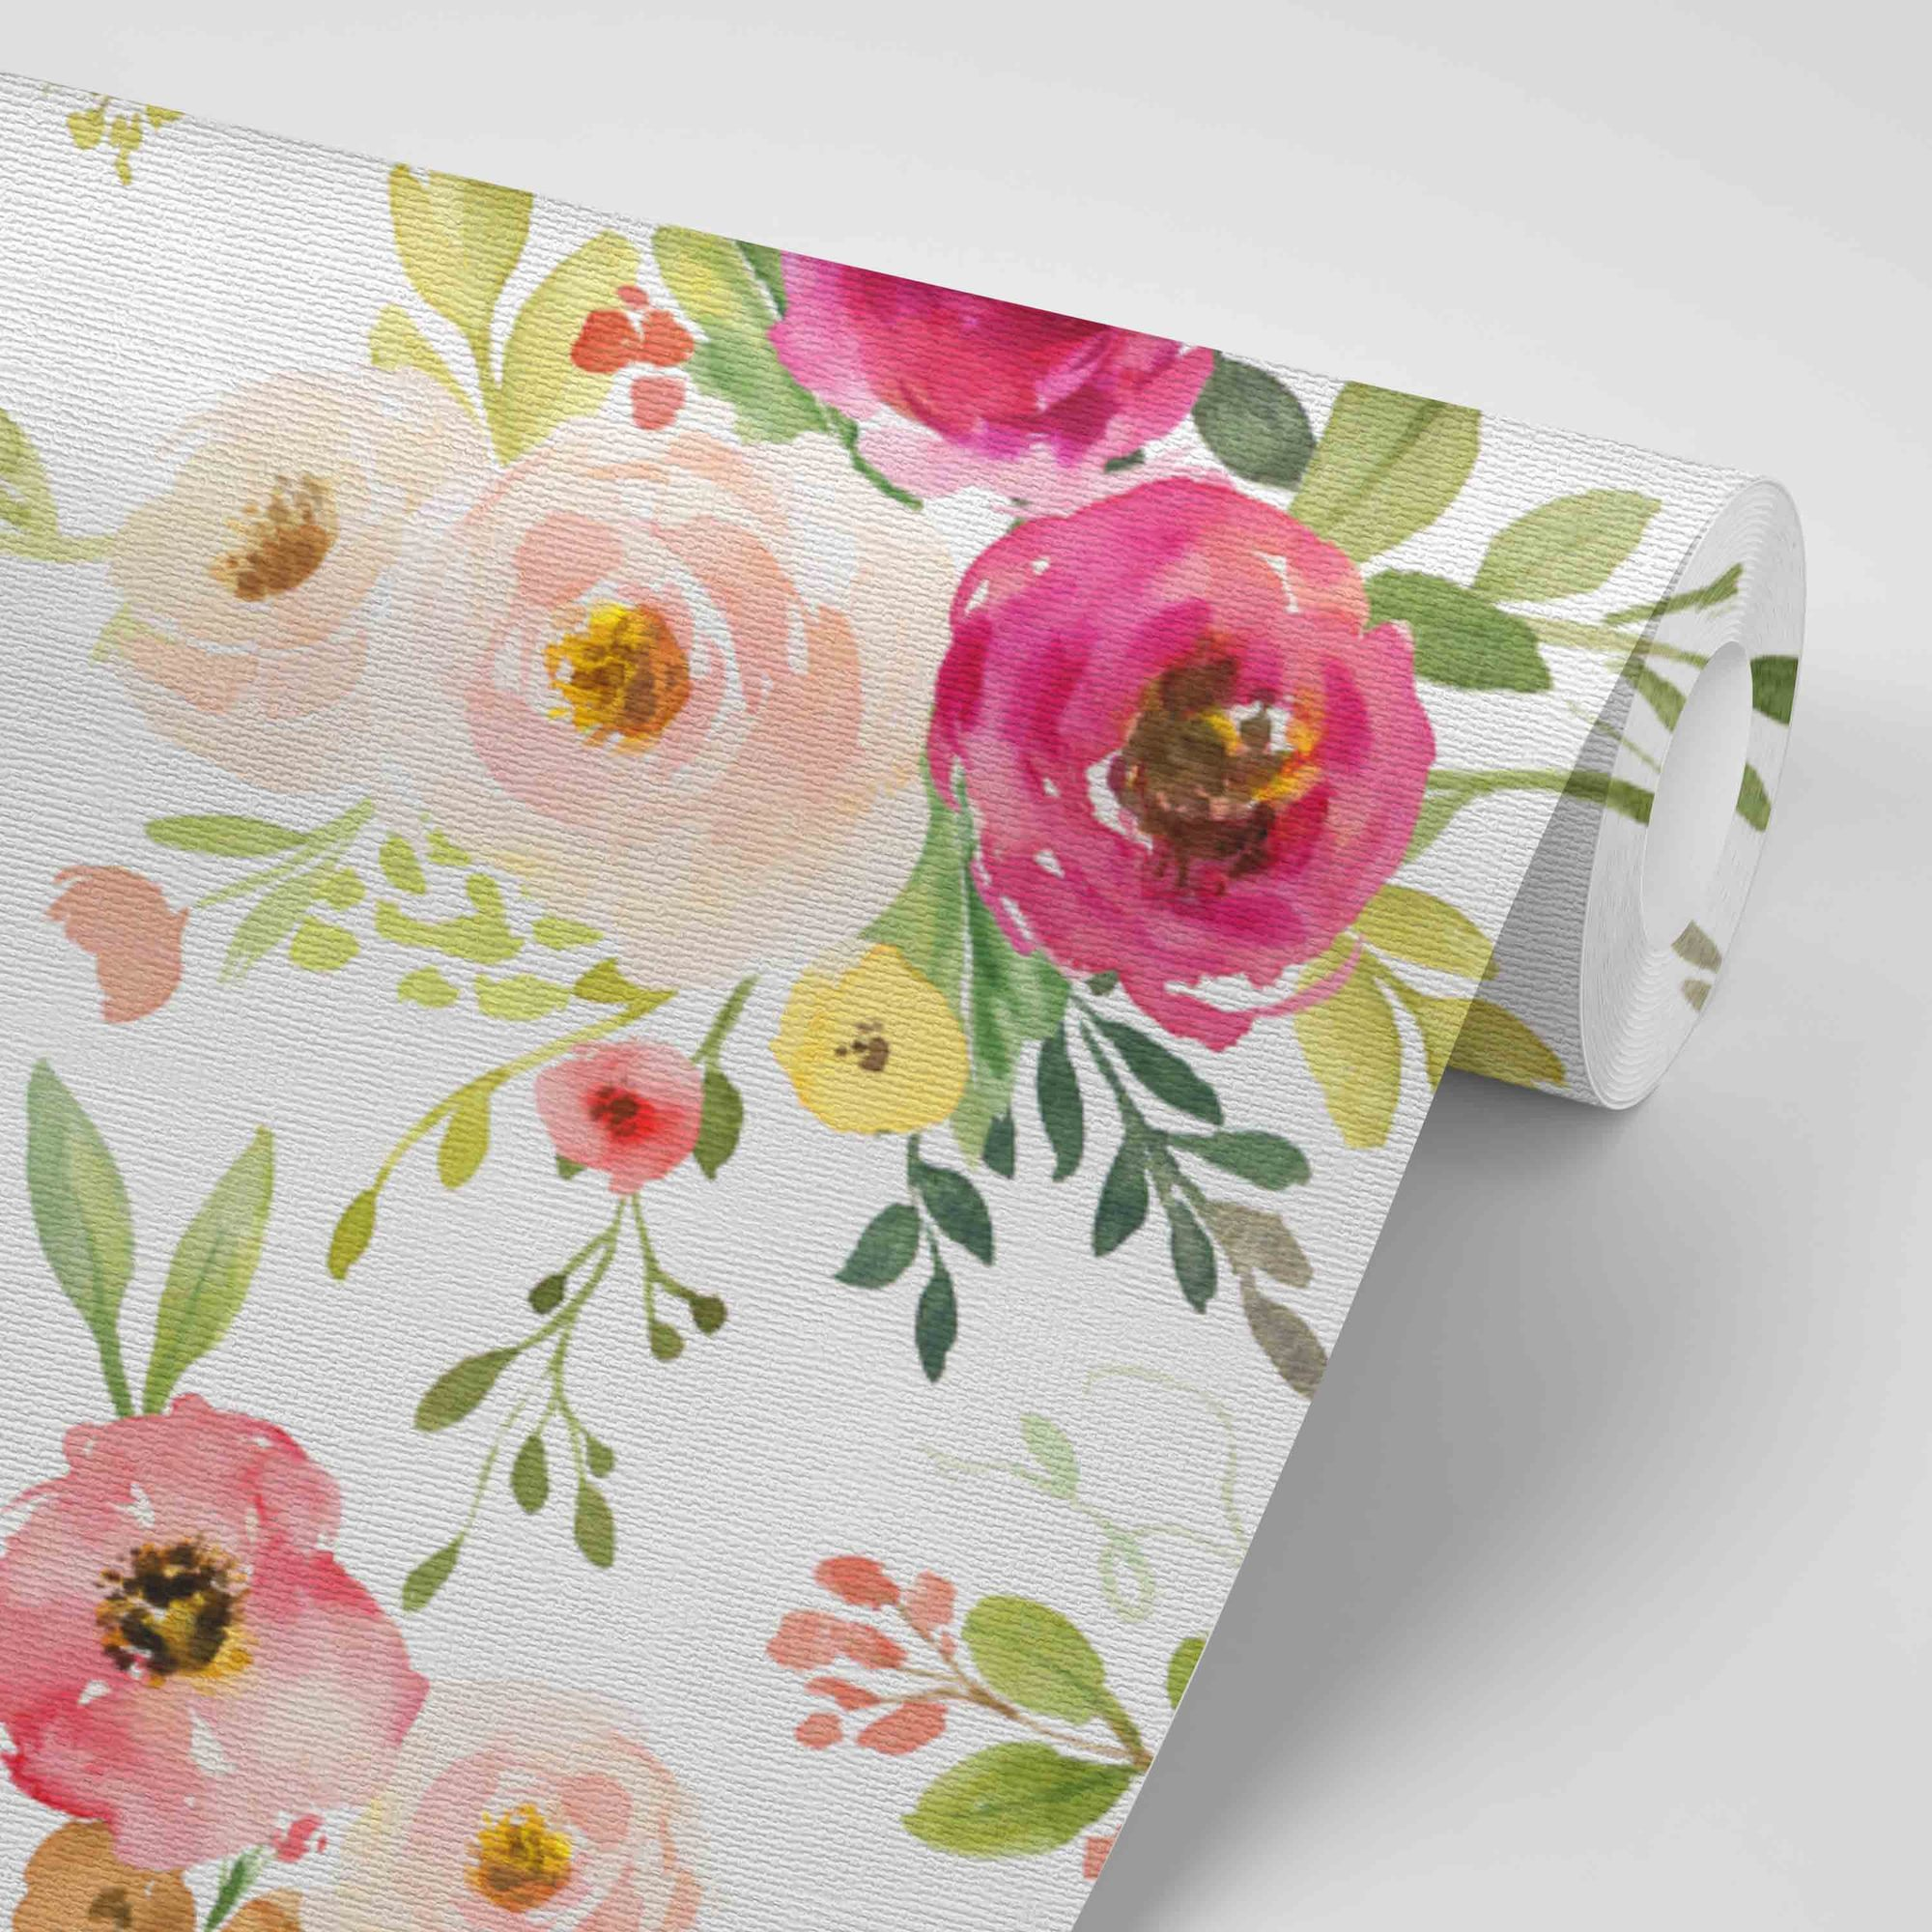 Frannys Farmhouse Floral Removable Wallpaper Caden Lane 2000x2000